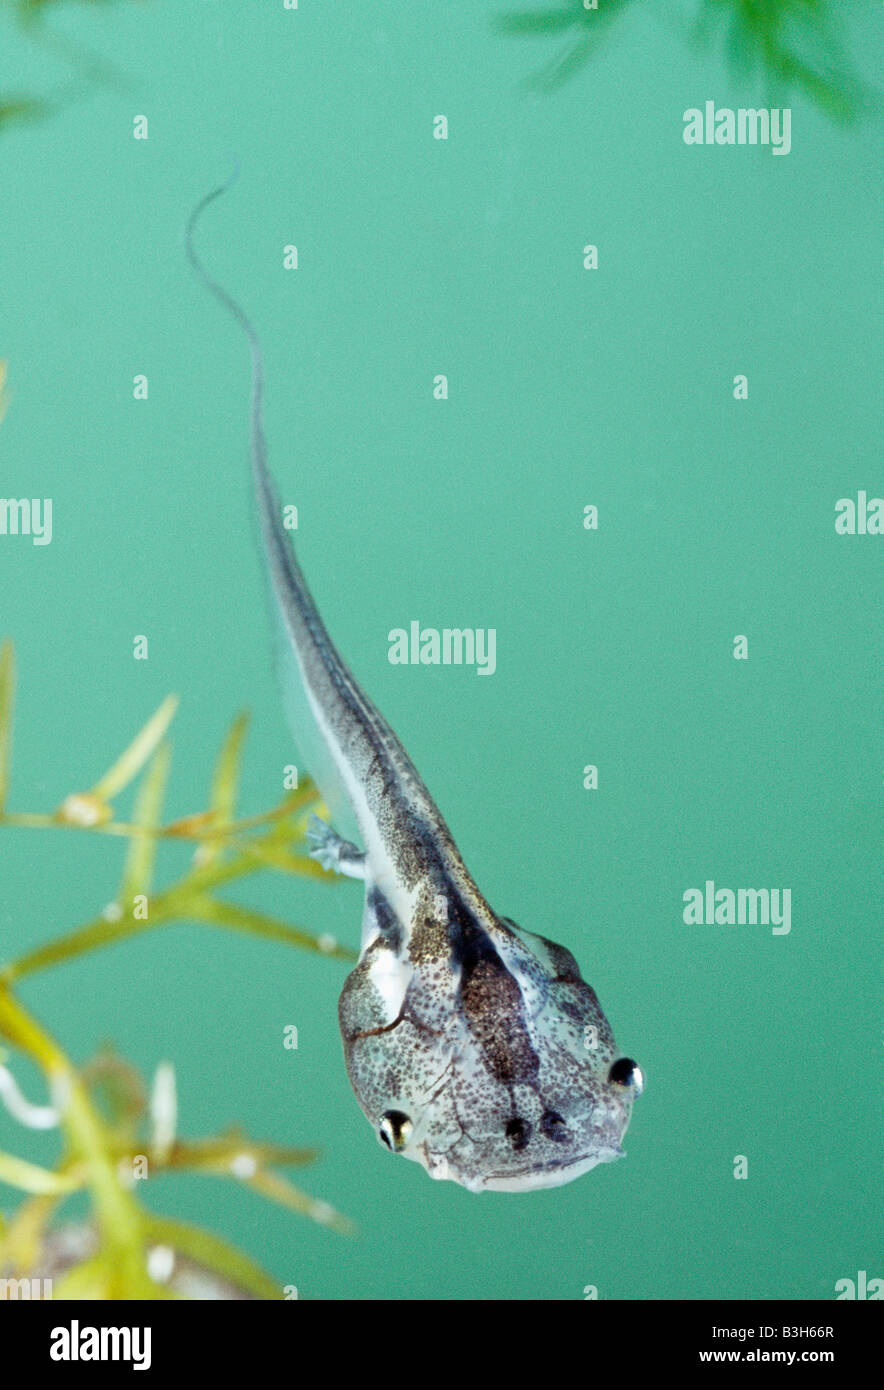 Stock Photo Tadpole Of South African Clawed Frog Xenopus Laevis 19432415 on Life Cycles Of Frog